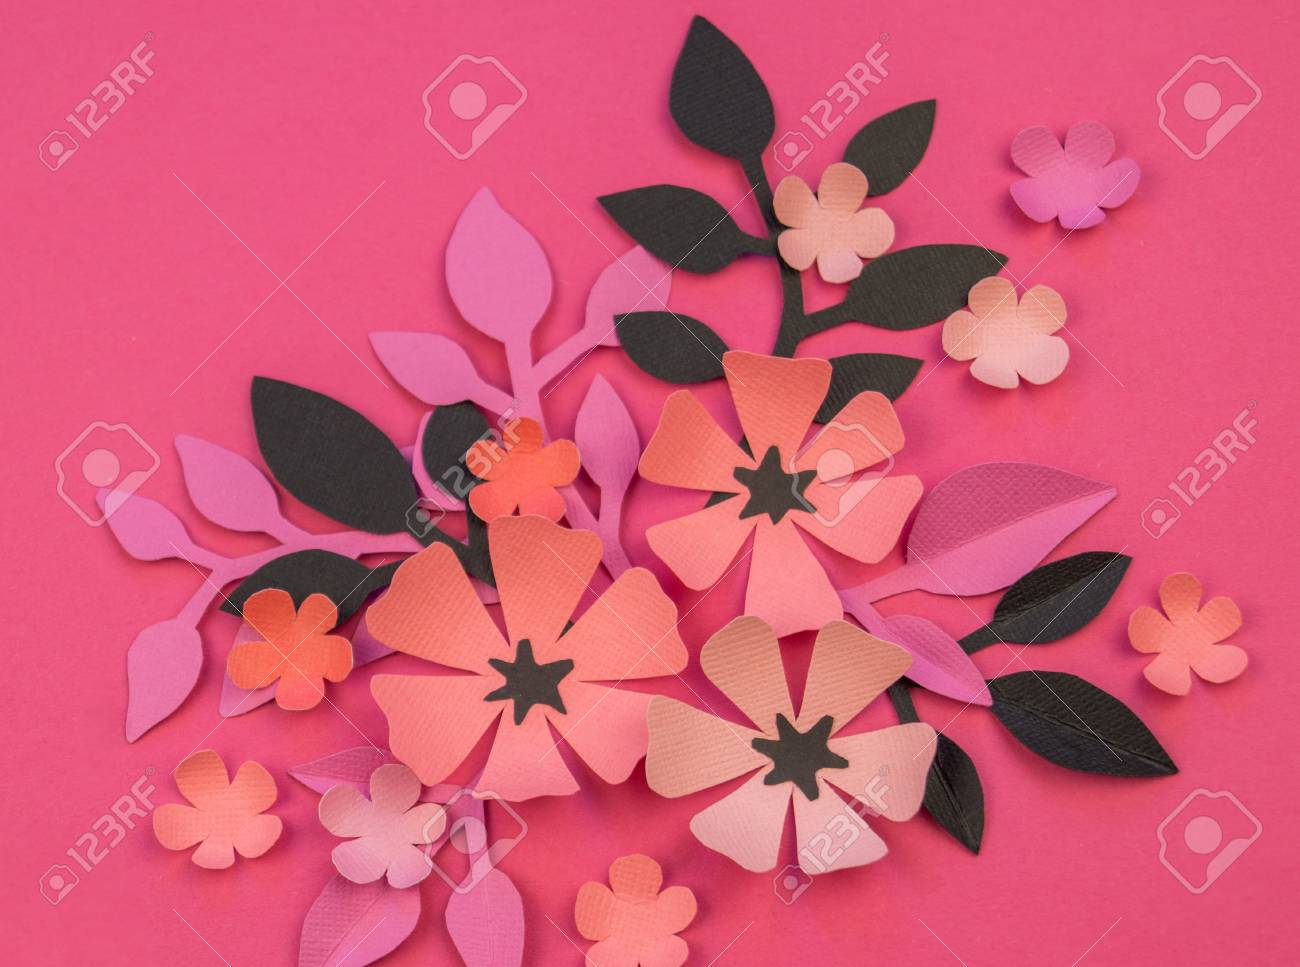 Flower And Leaves Made Of Paper On A Pink Background Handwork